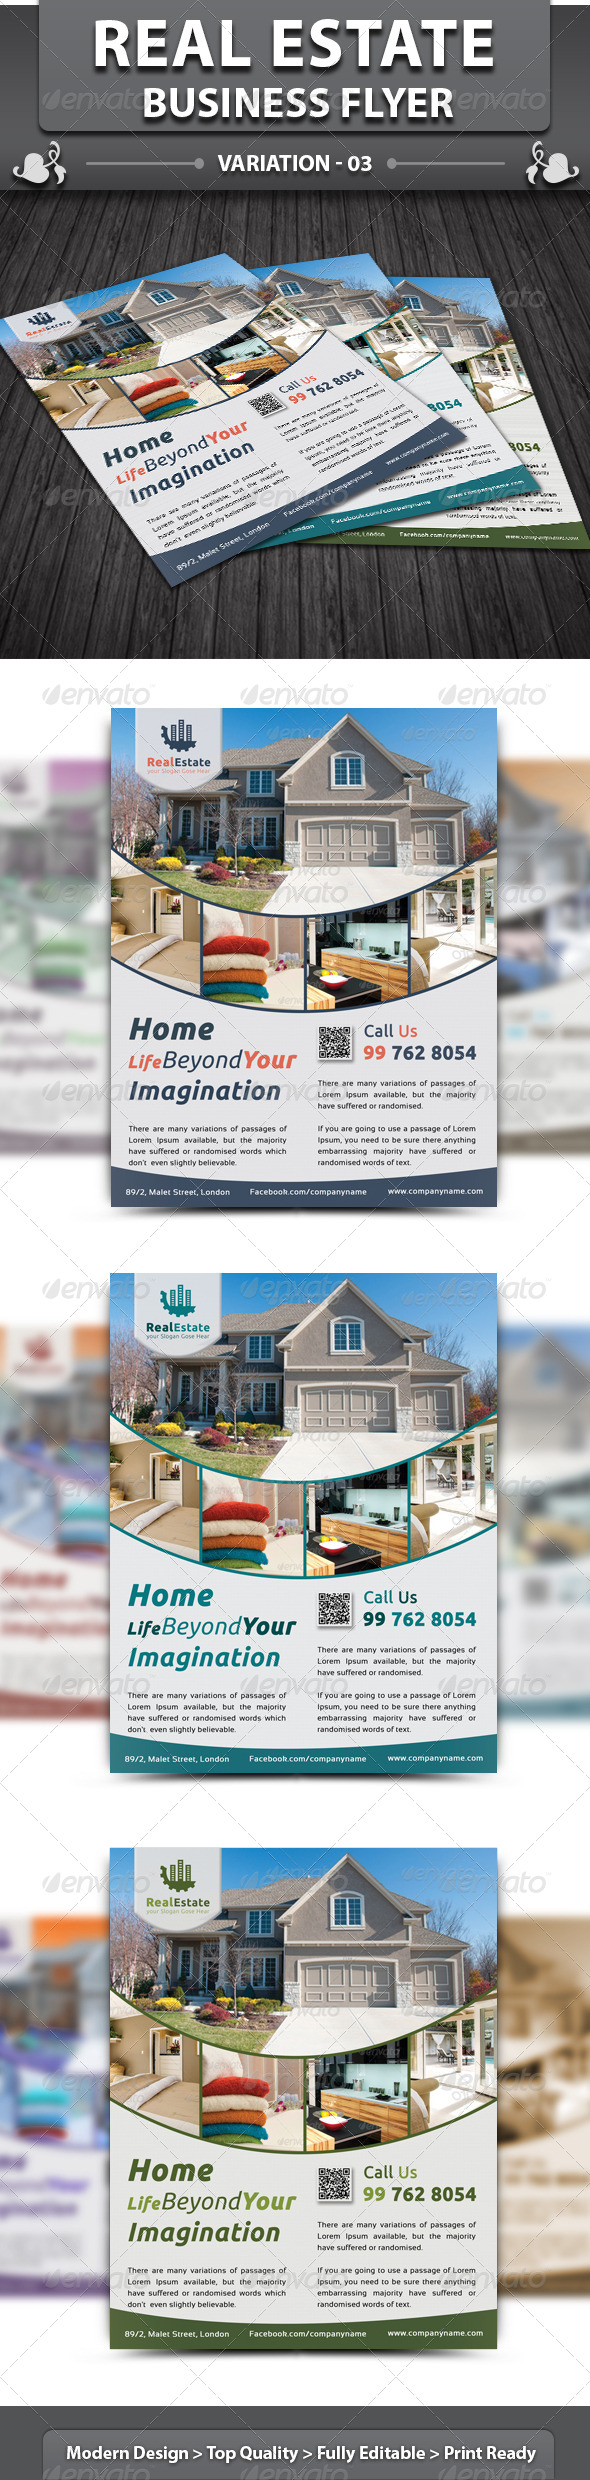 GraphicRiver Real Estate Business Flyer 5551816